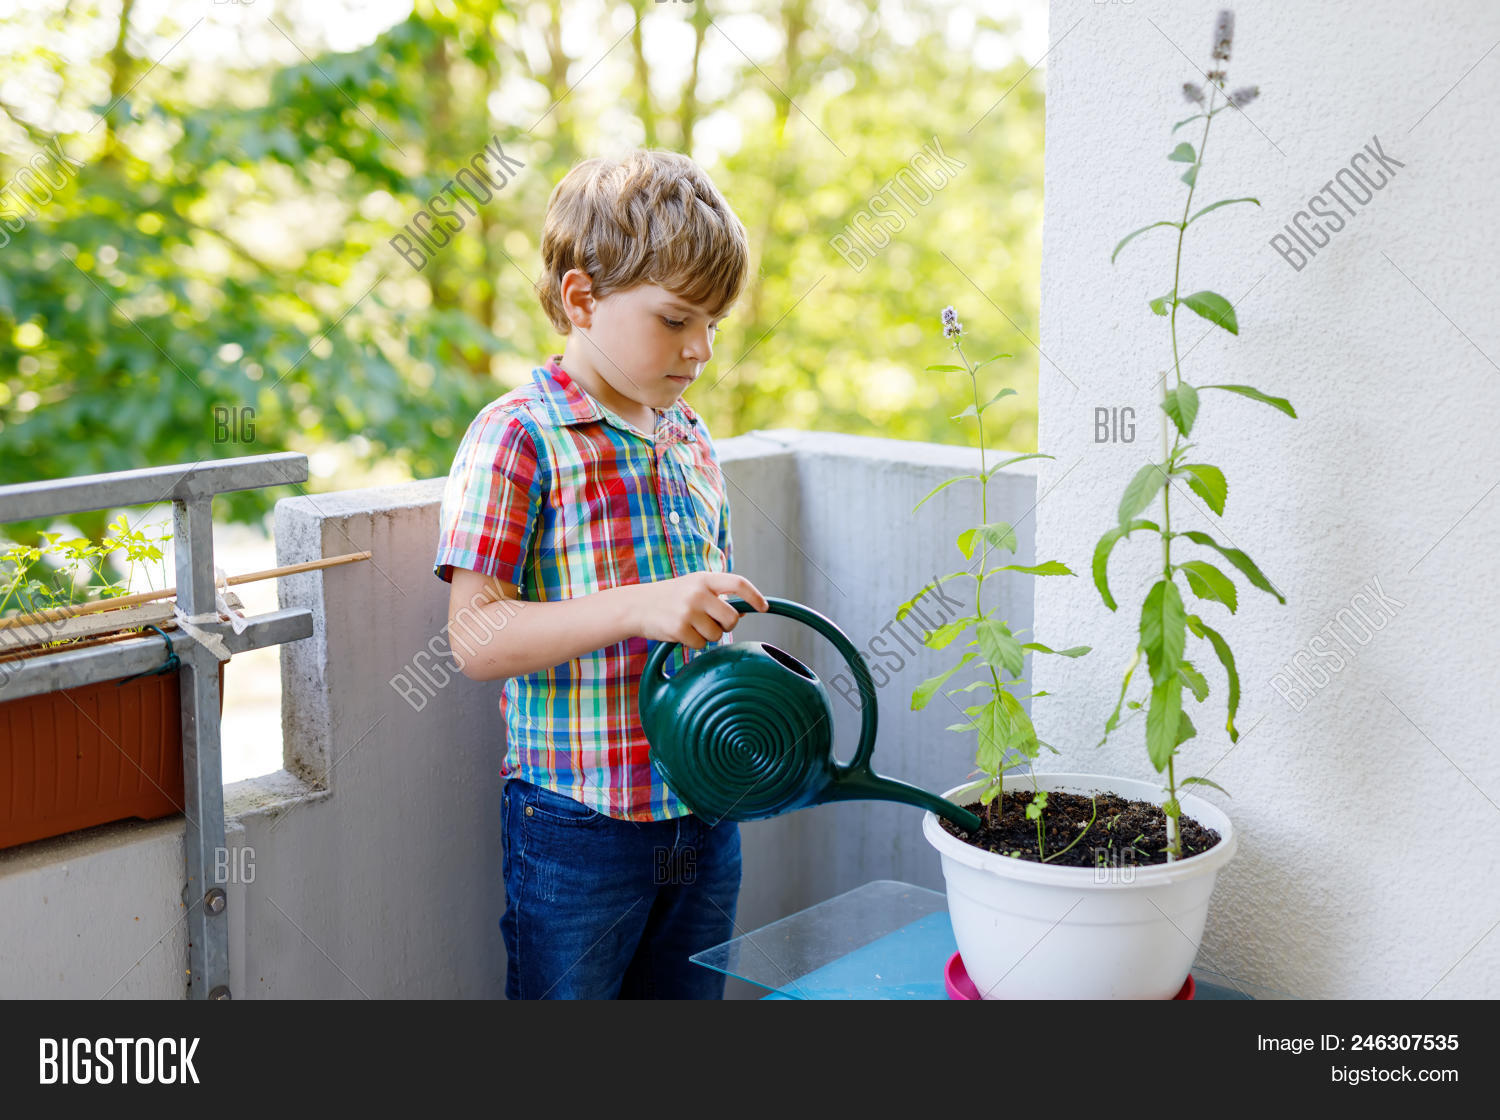 Active Little Preschool Kid Boy Watering Plants With Water Can At Home On Balcony